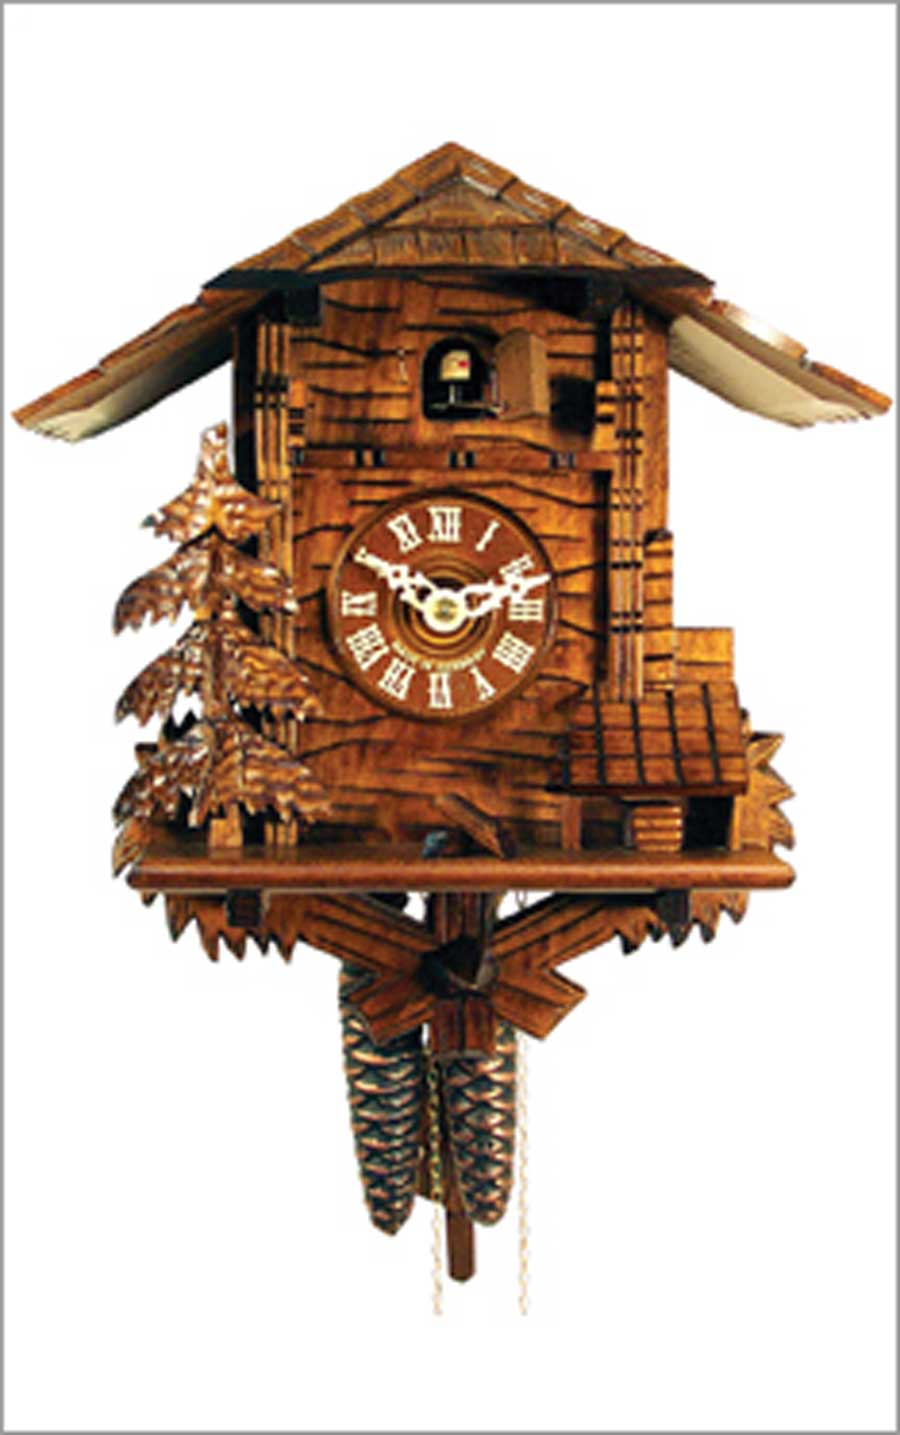 Unique Nature cuckoo clock in brown and home design for home accessories ideas